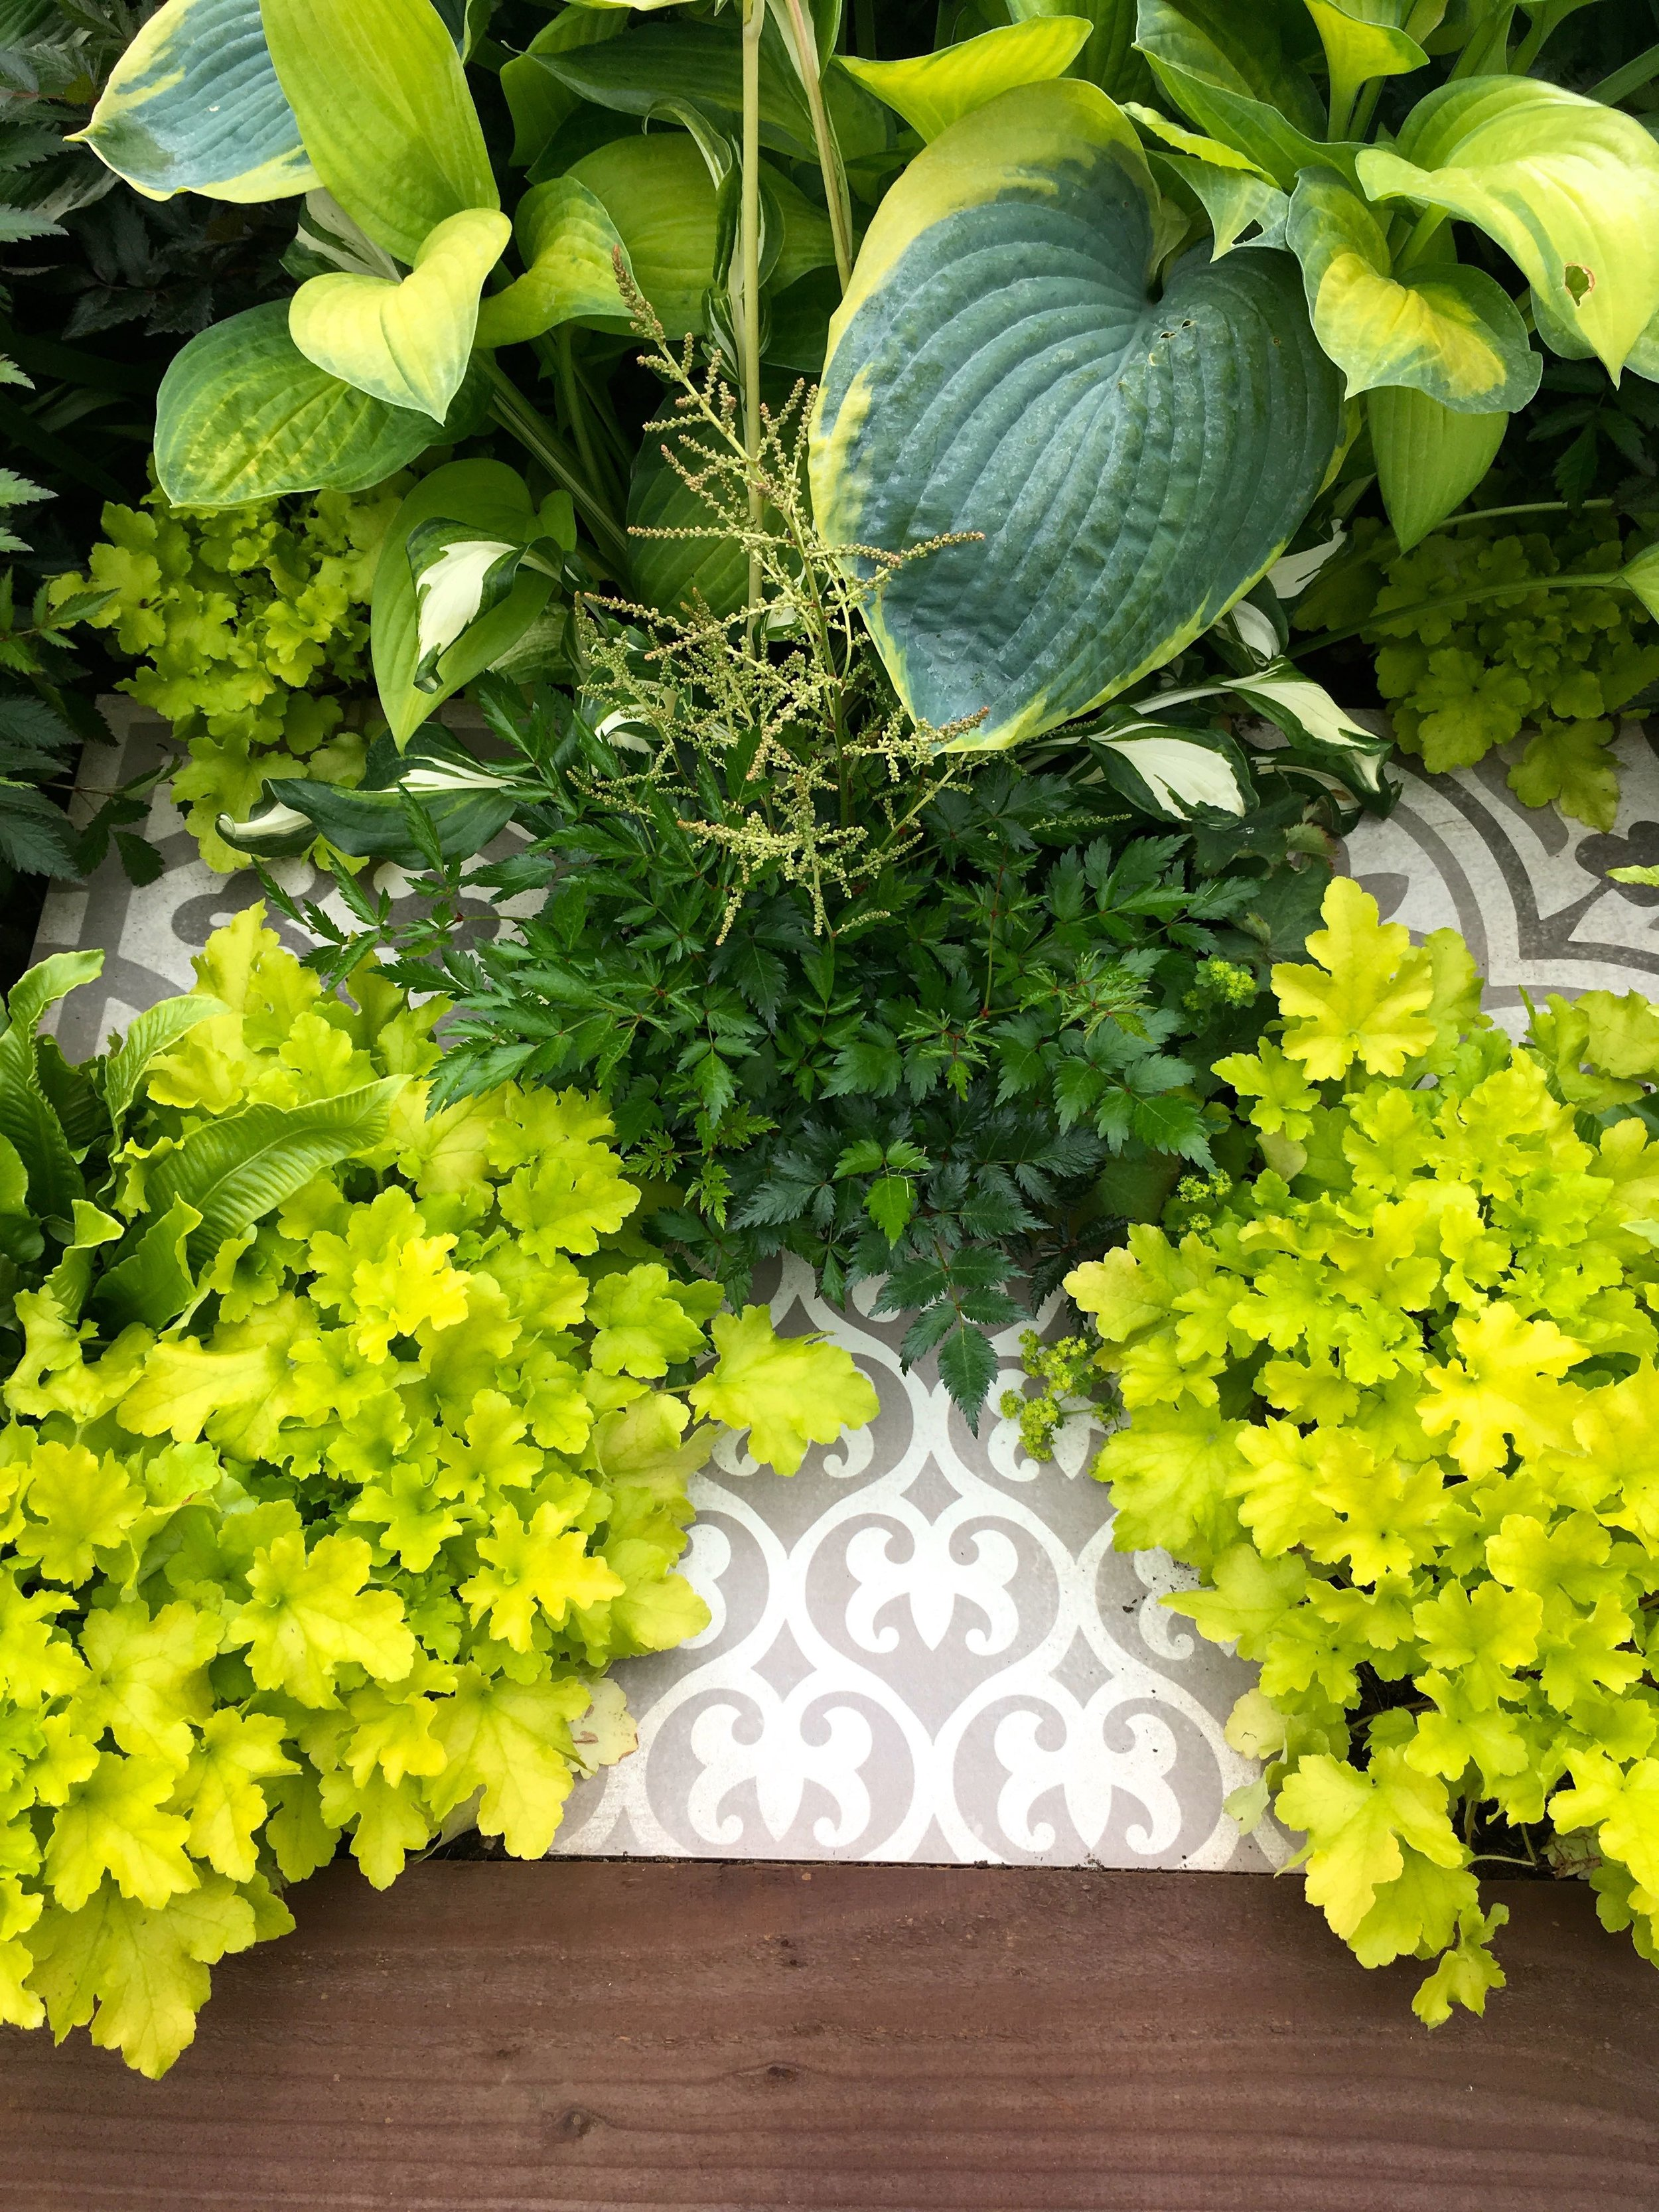 hostas and yellow-y greens spilling over patterned tiles